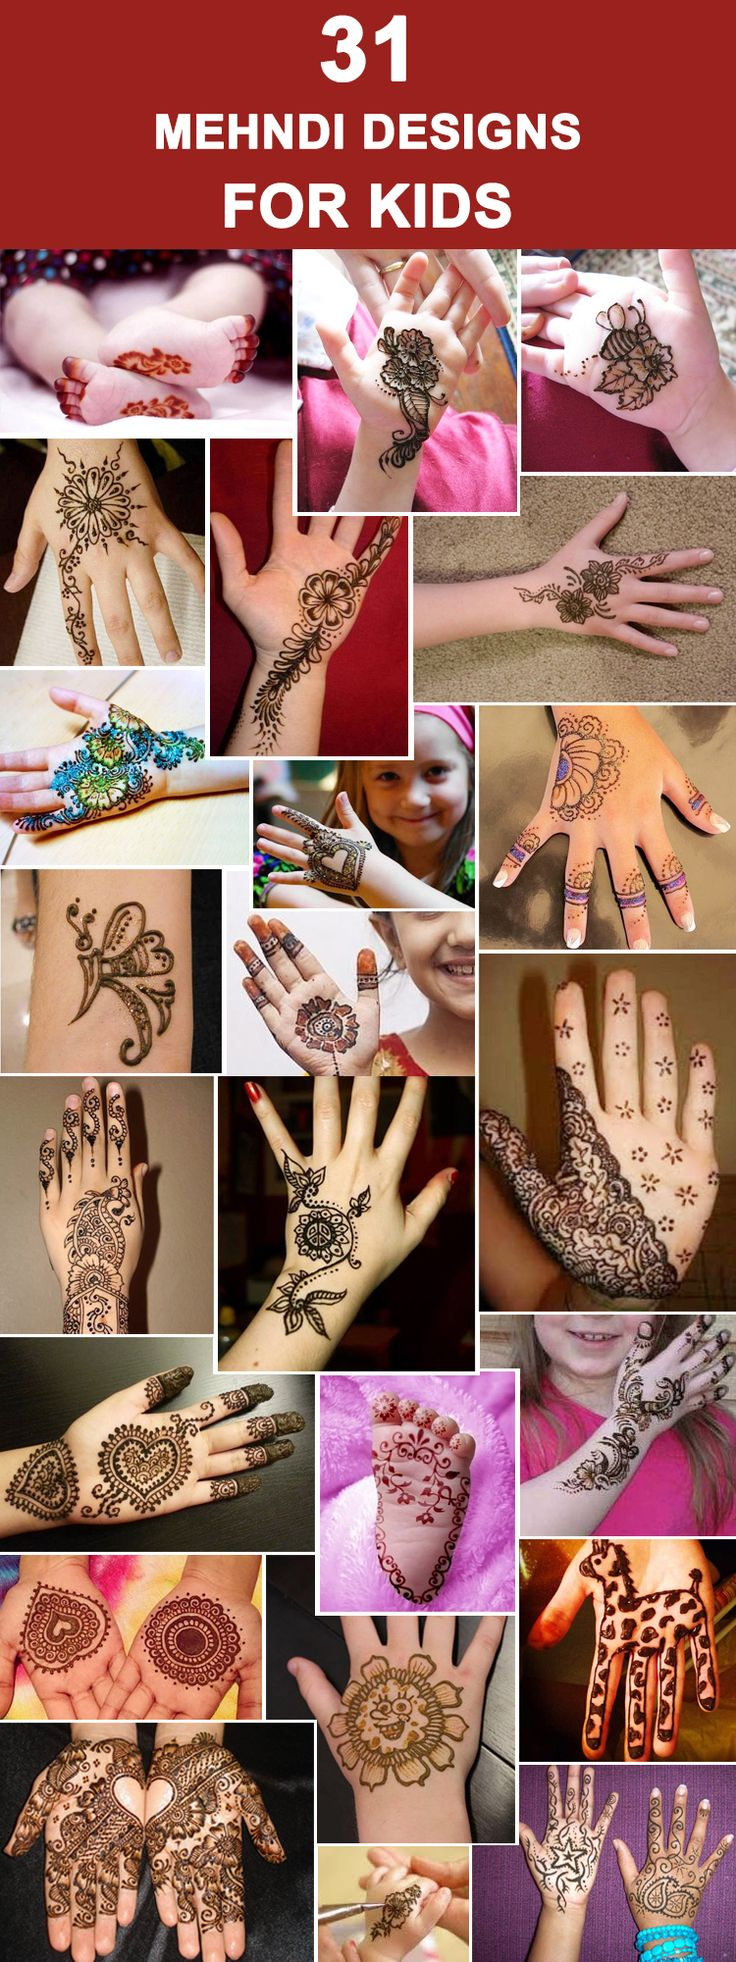 31 Mehndi Designs For Kids